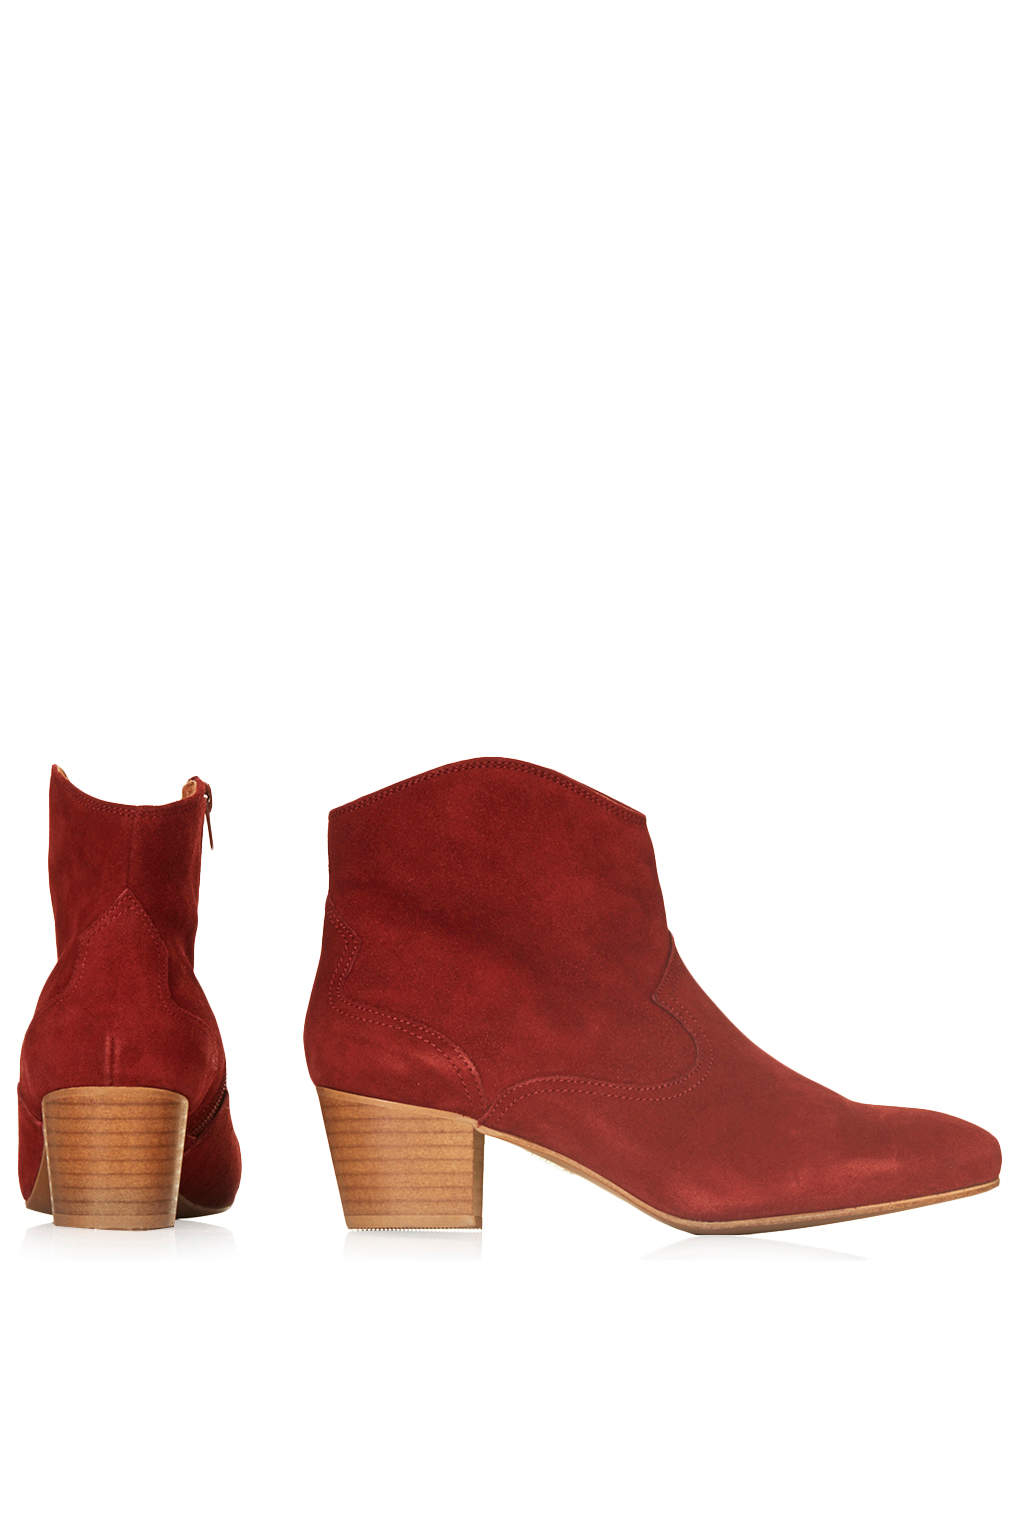 Topshop Womens Annette Cowboy Boots Burgundy In Red